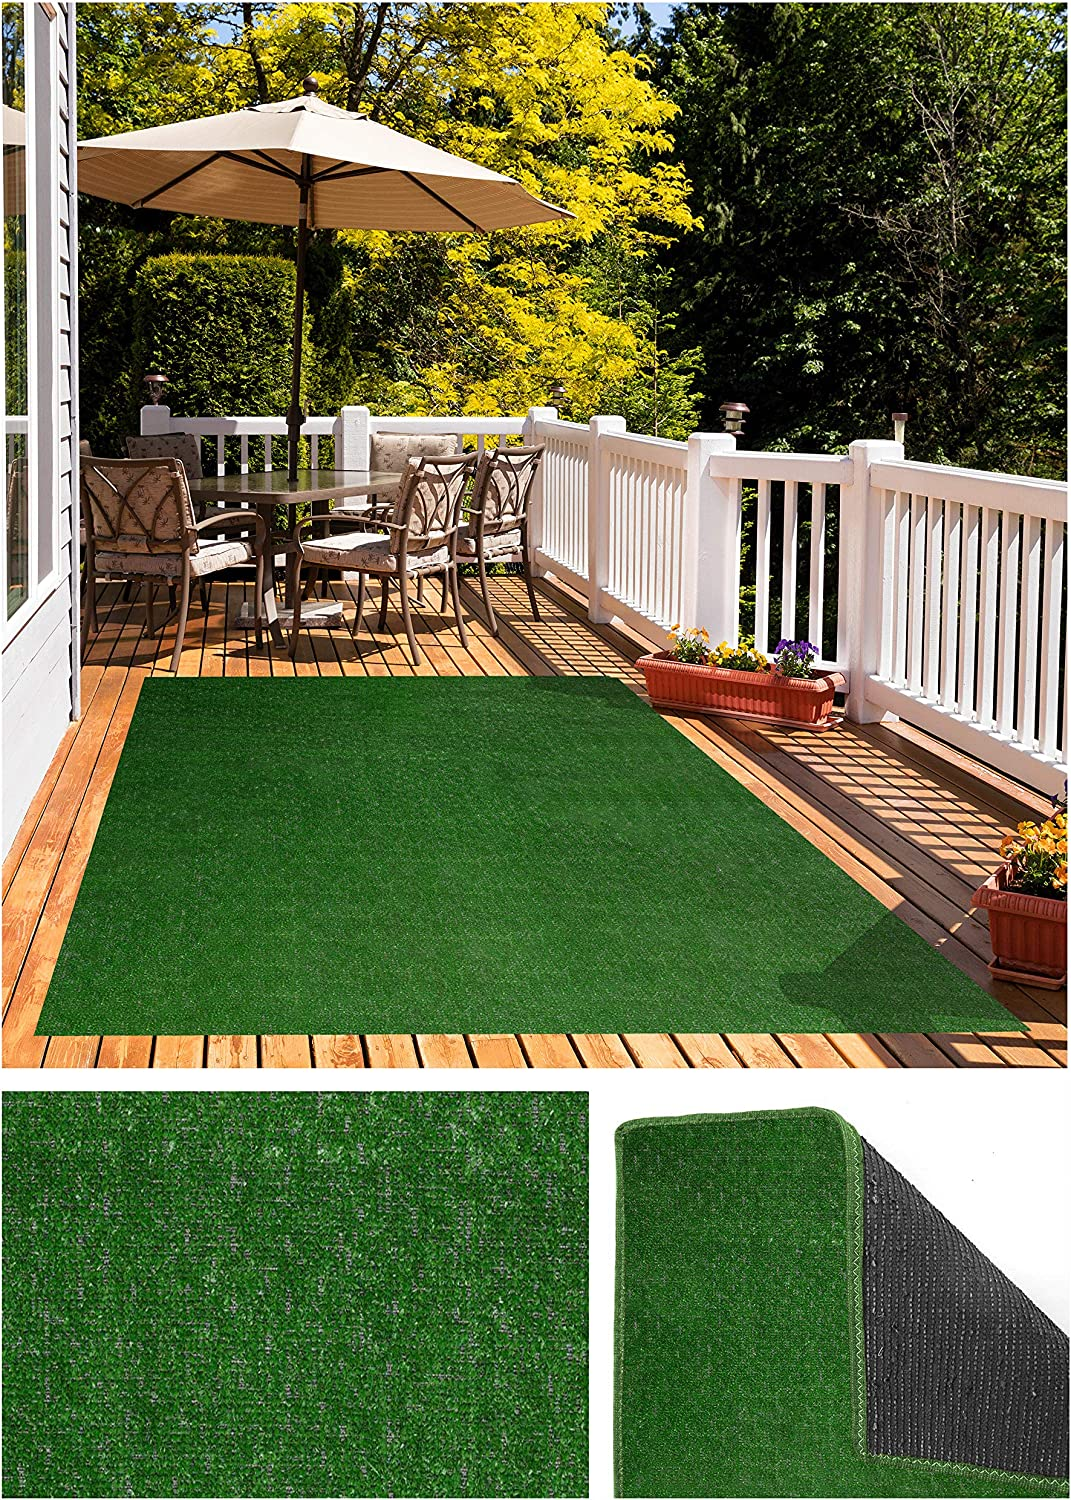 Price reduction Koeckritz Green Pasture Indoor - Outdoor Max 73% OFF Turf Artificial A Grass